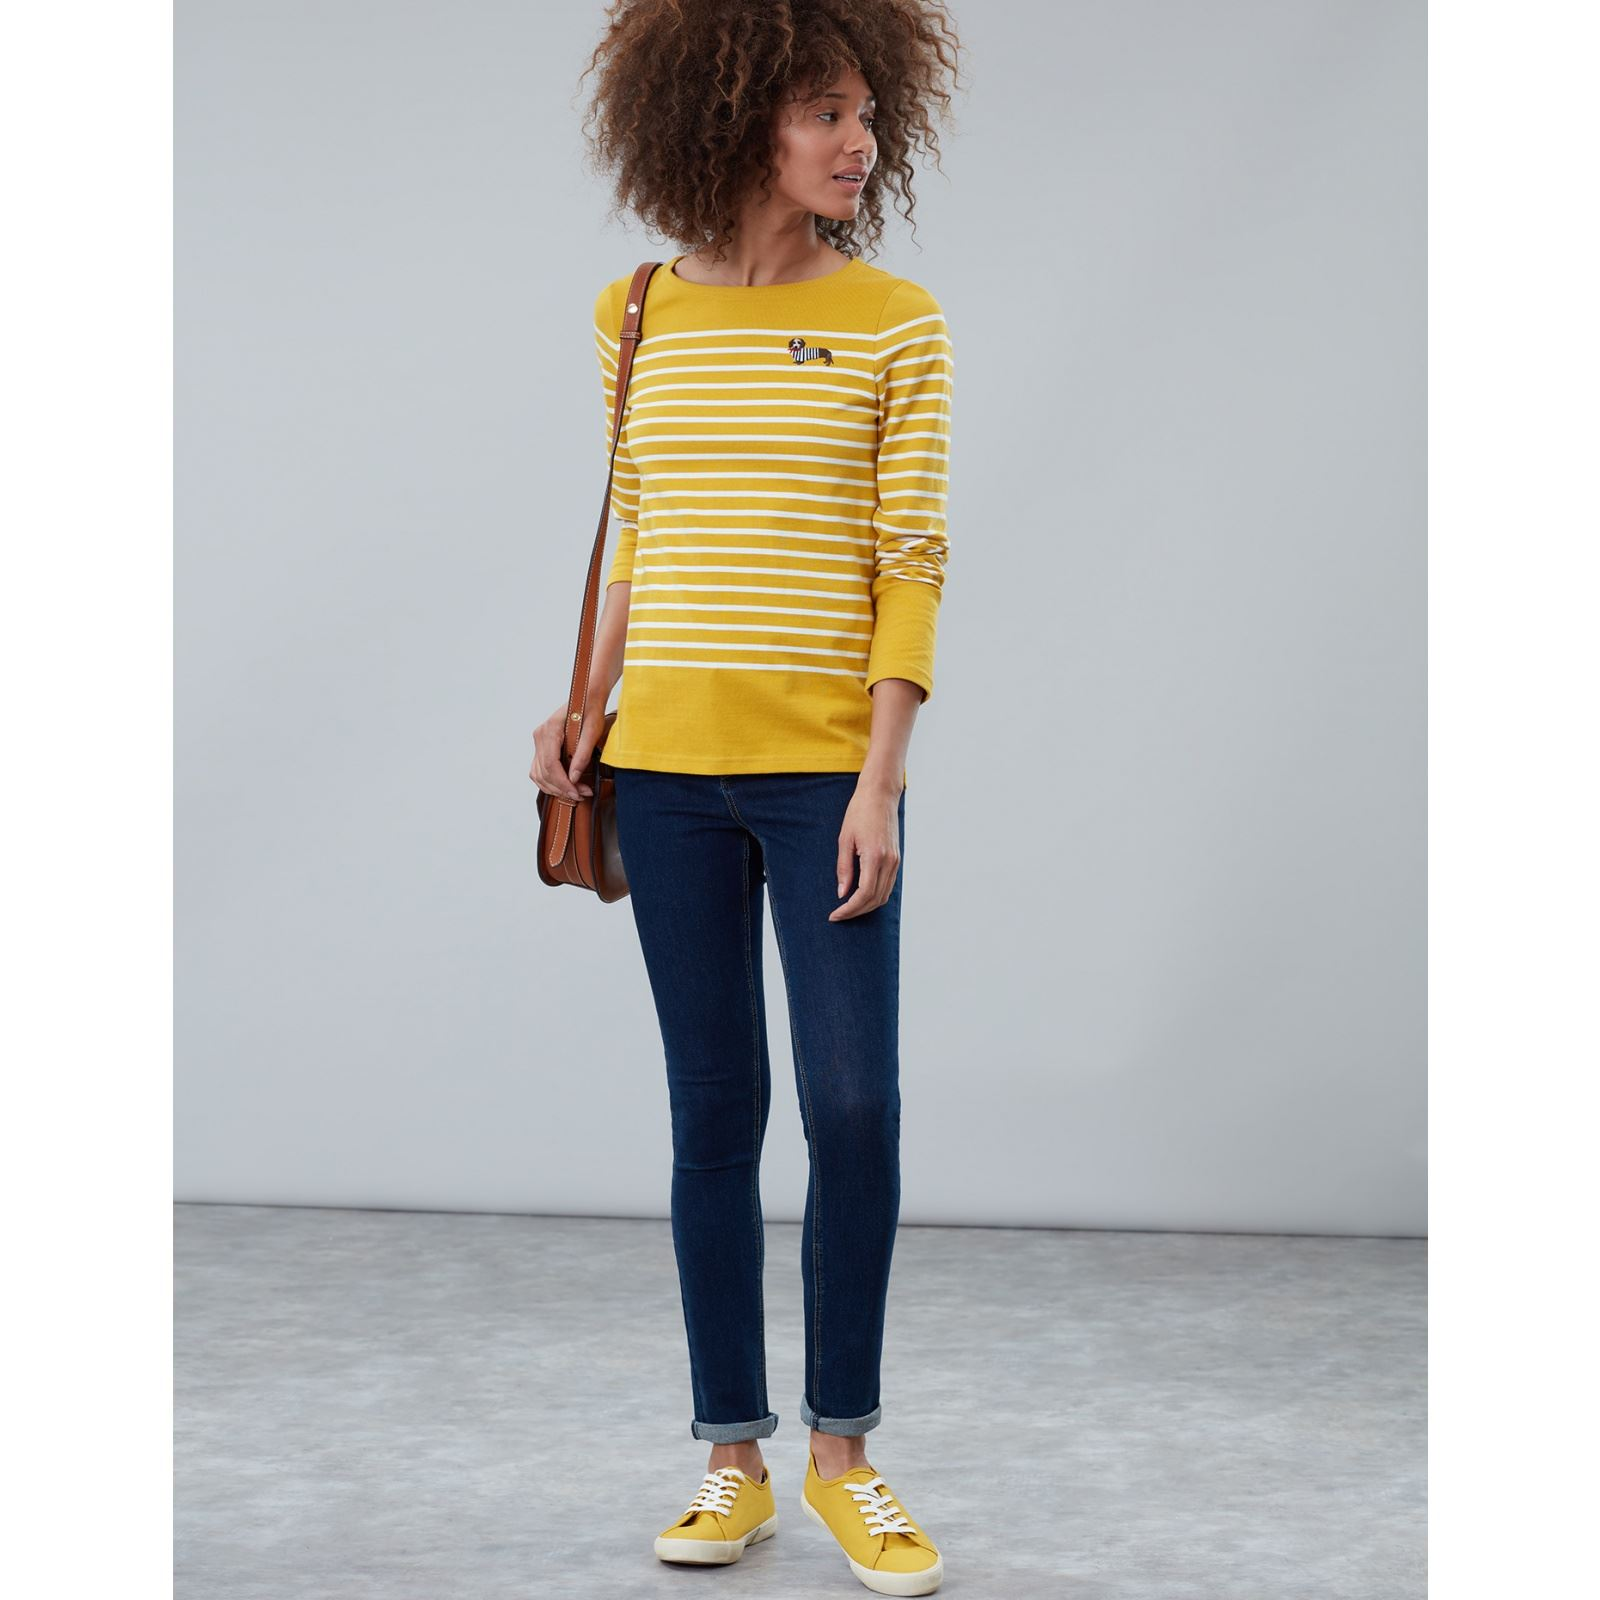 Joules-Harbour-Bordado-Manga-Larga-Jersey-Top-Mas-Colores miniatura 9